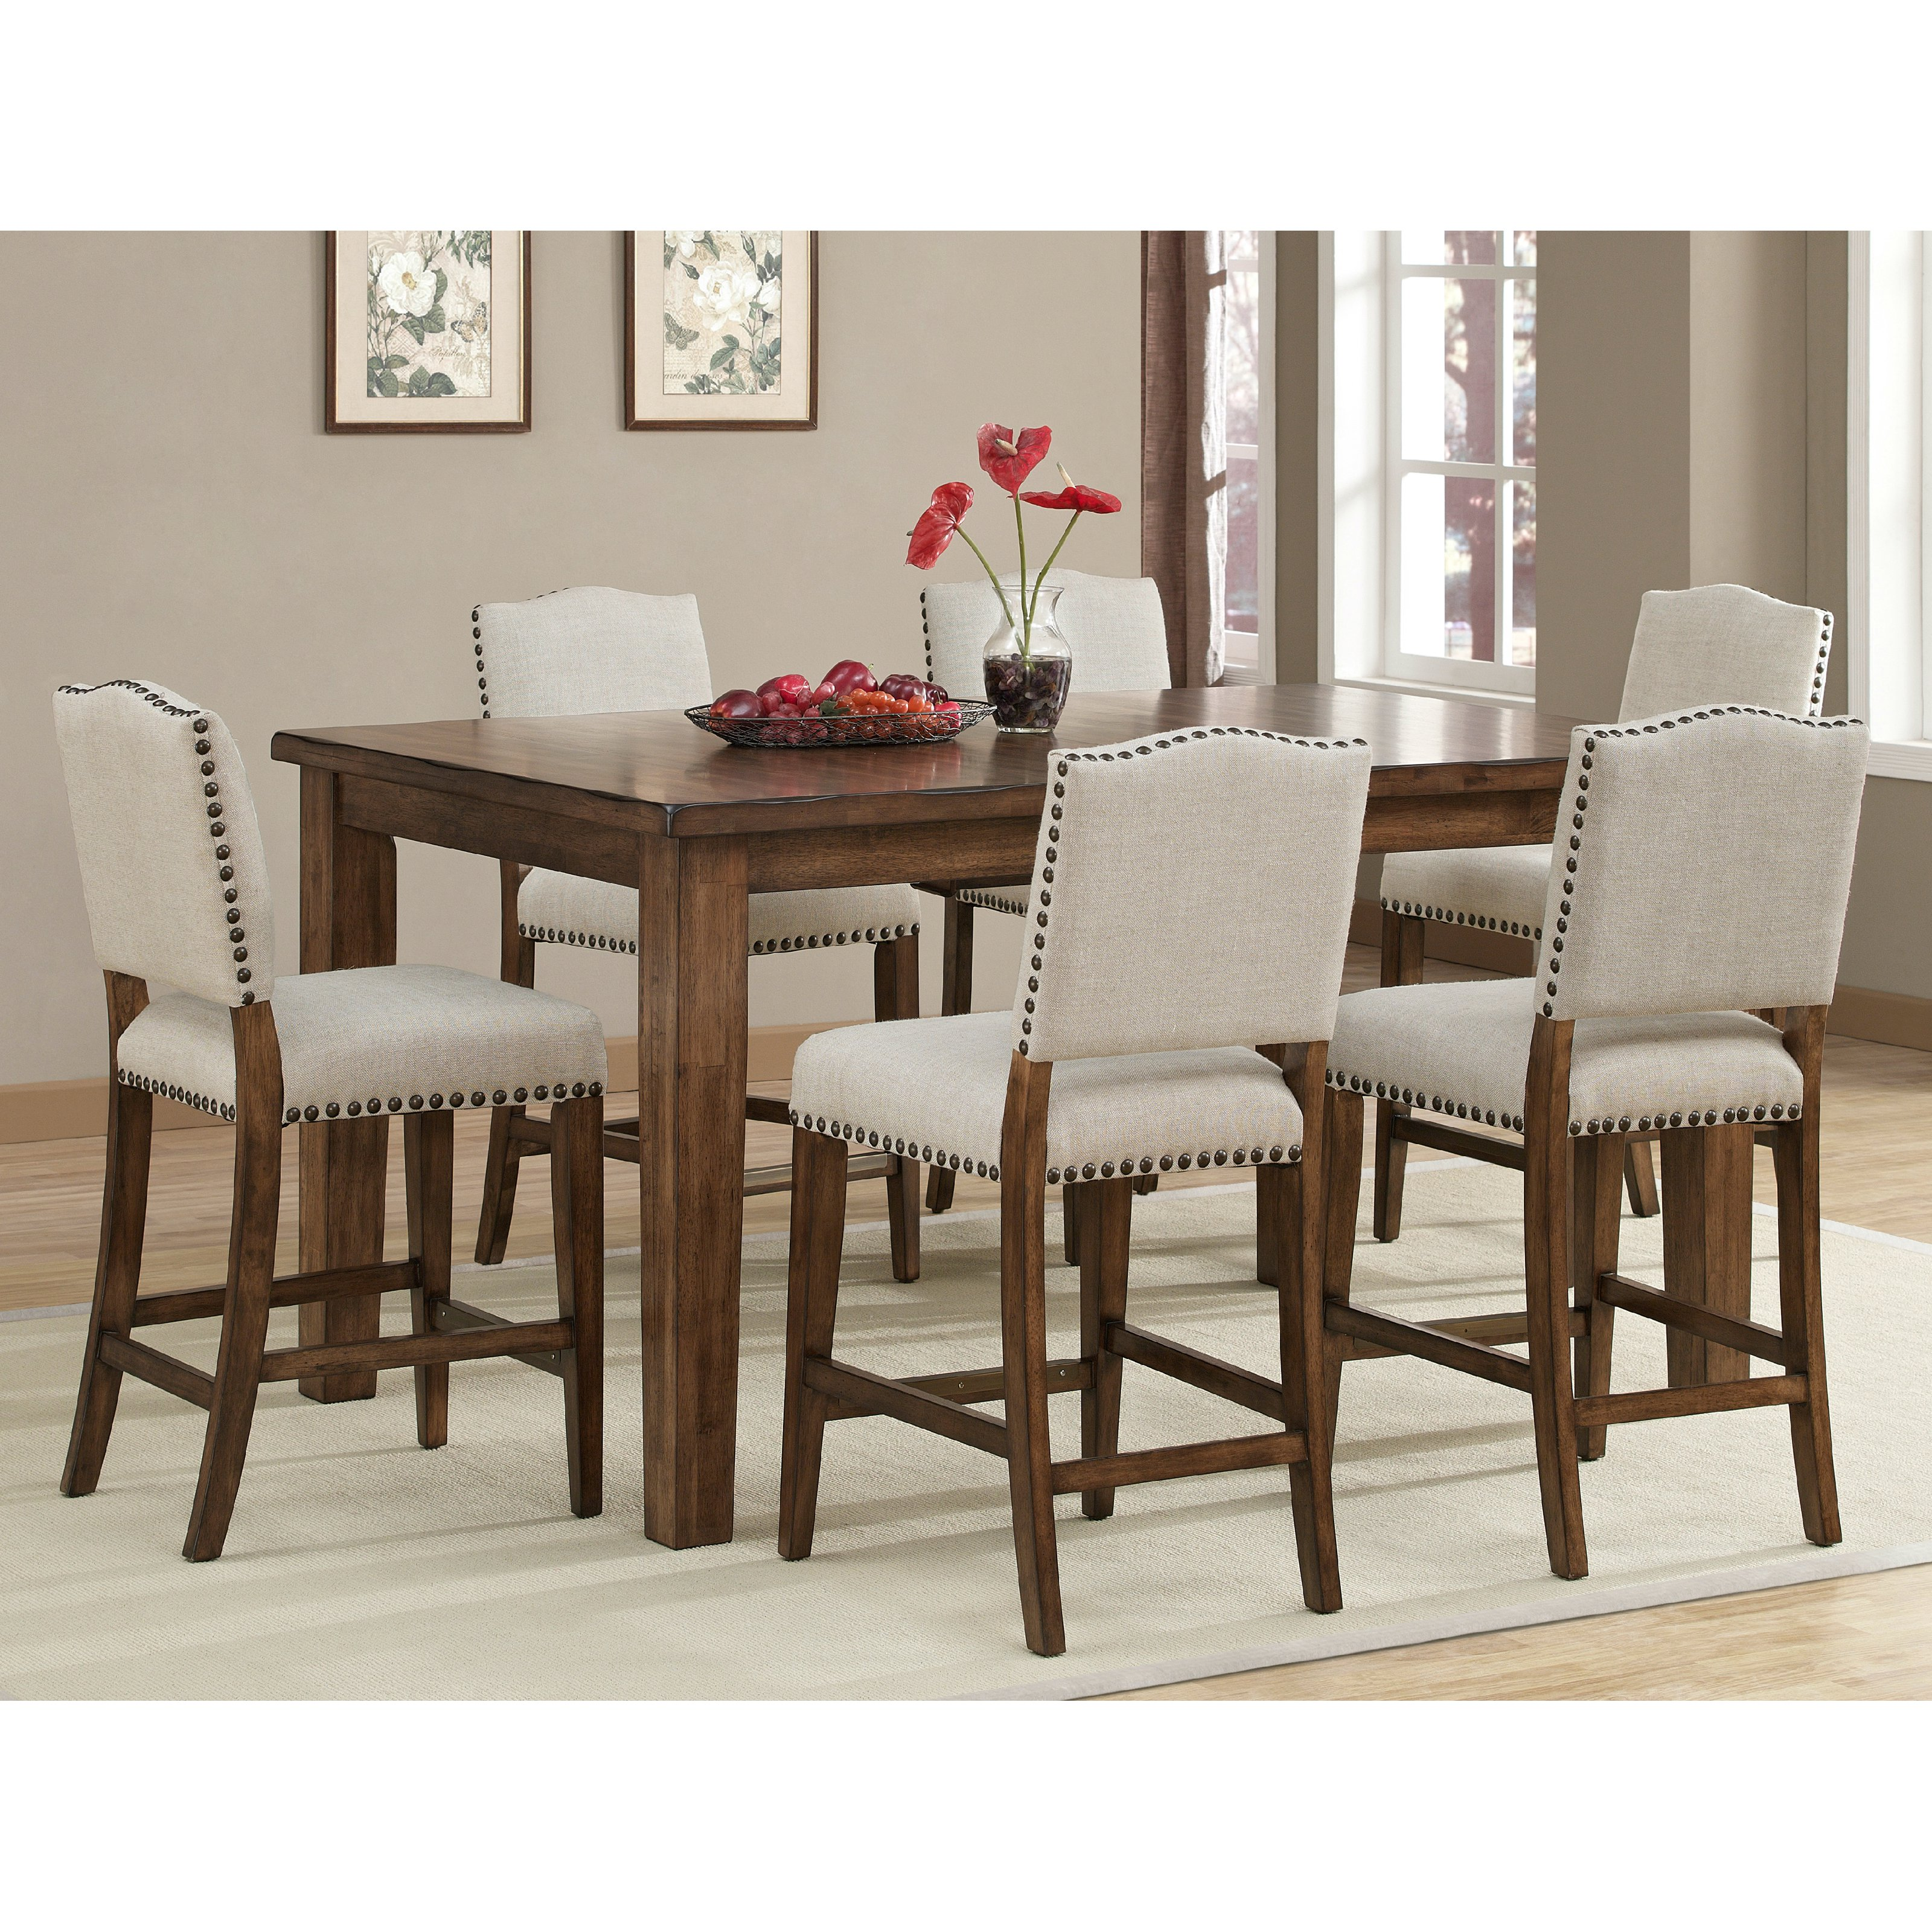 ahb cameo counter height dining table in coastal grey - dining tables at JEMJWTY